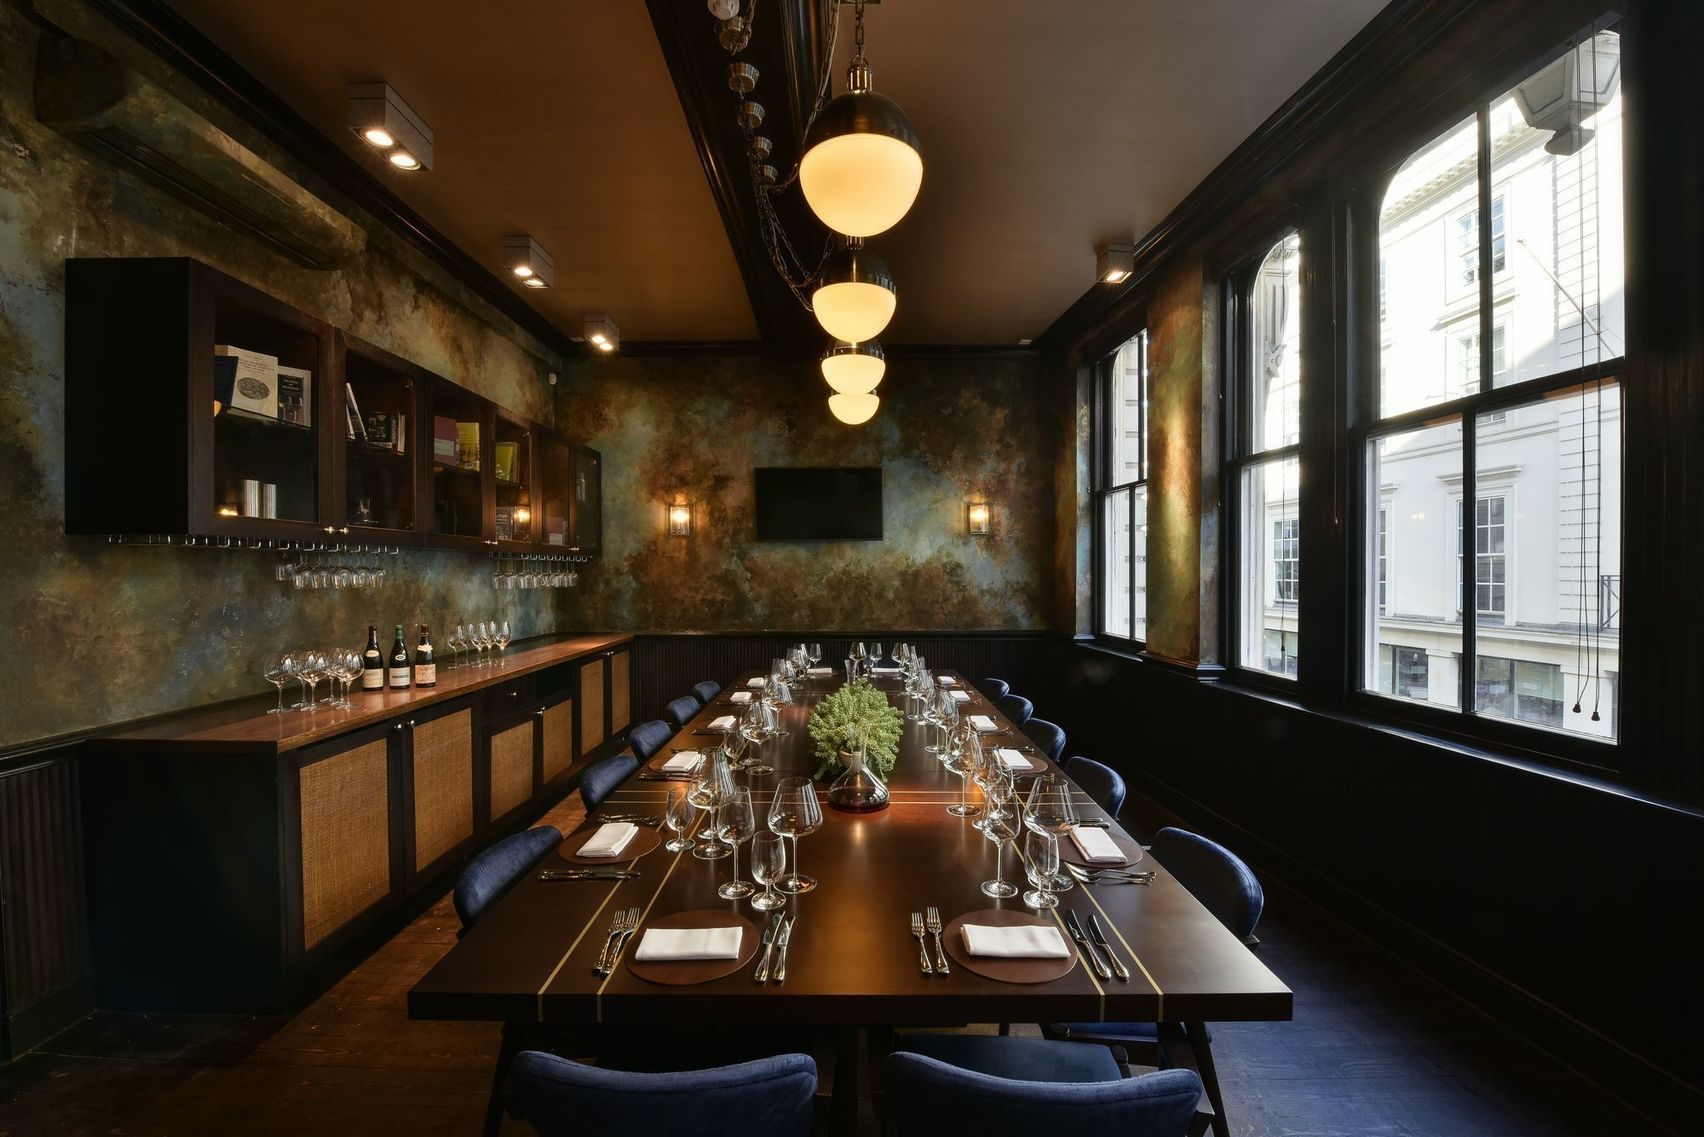 Glamorous private room dining london images best for Best private dining rooms chelsea